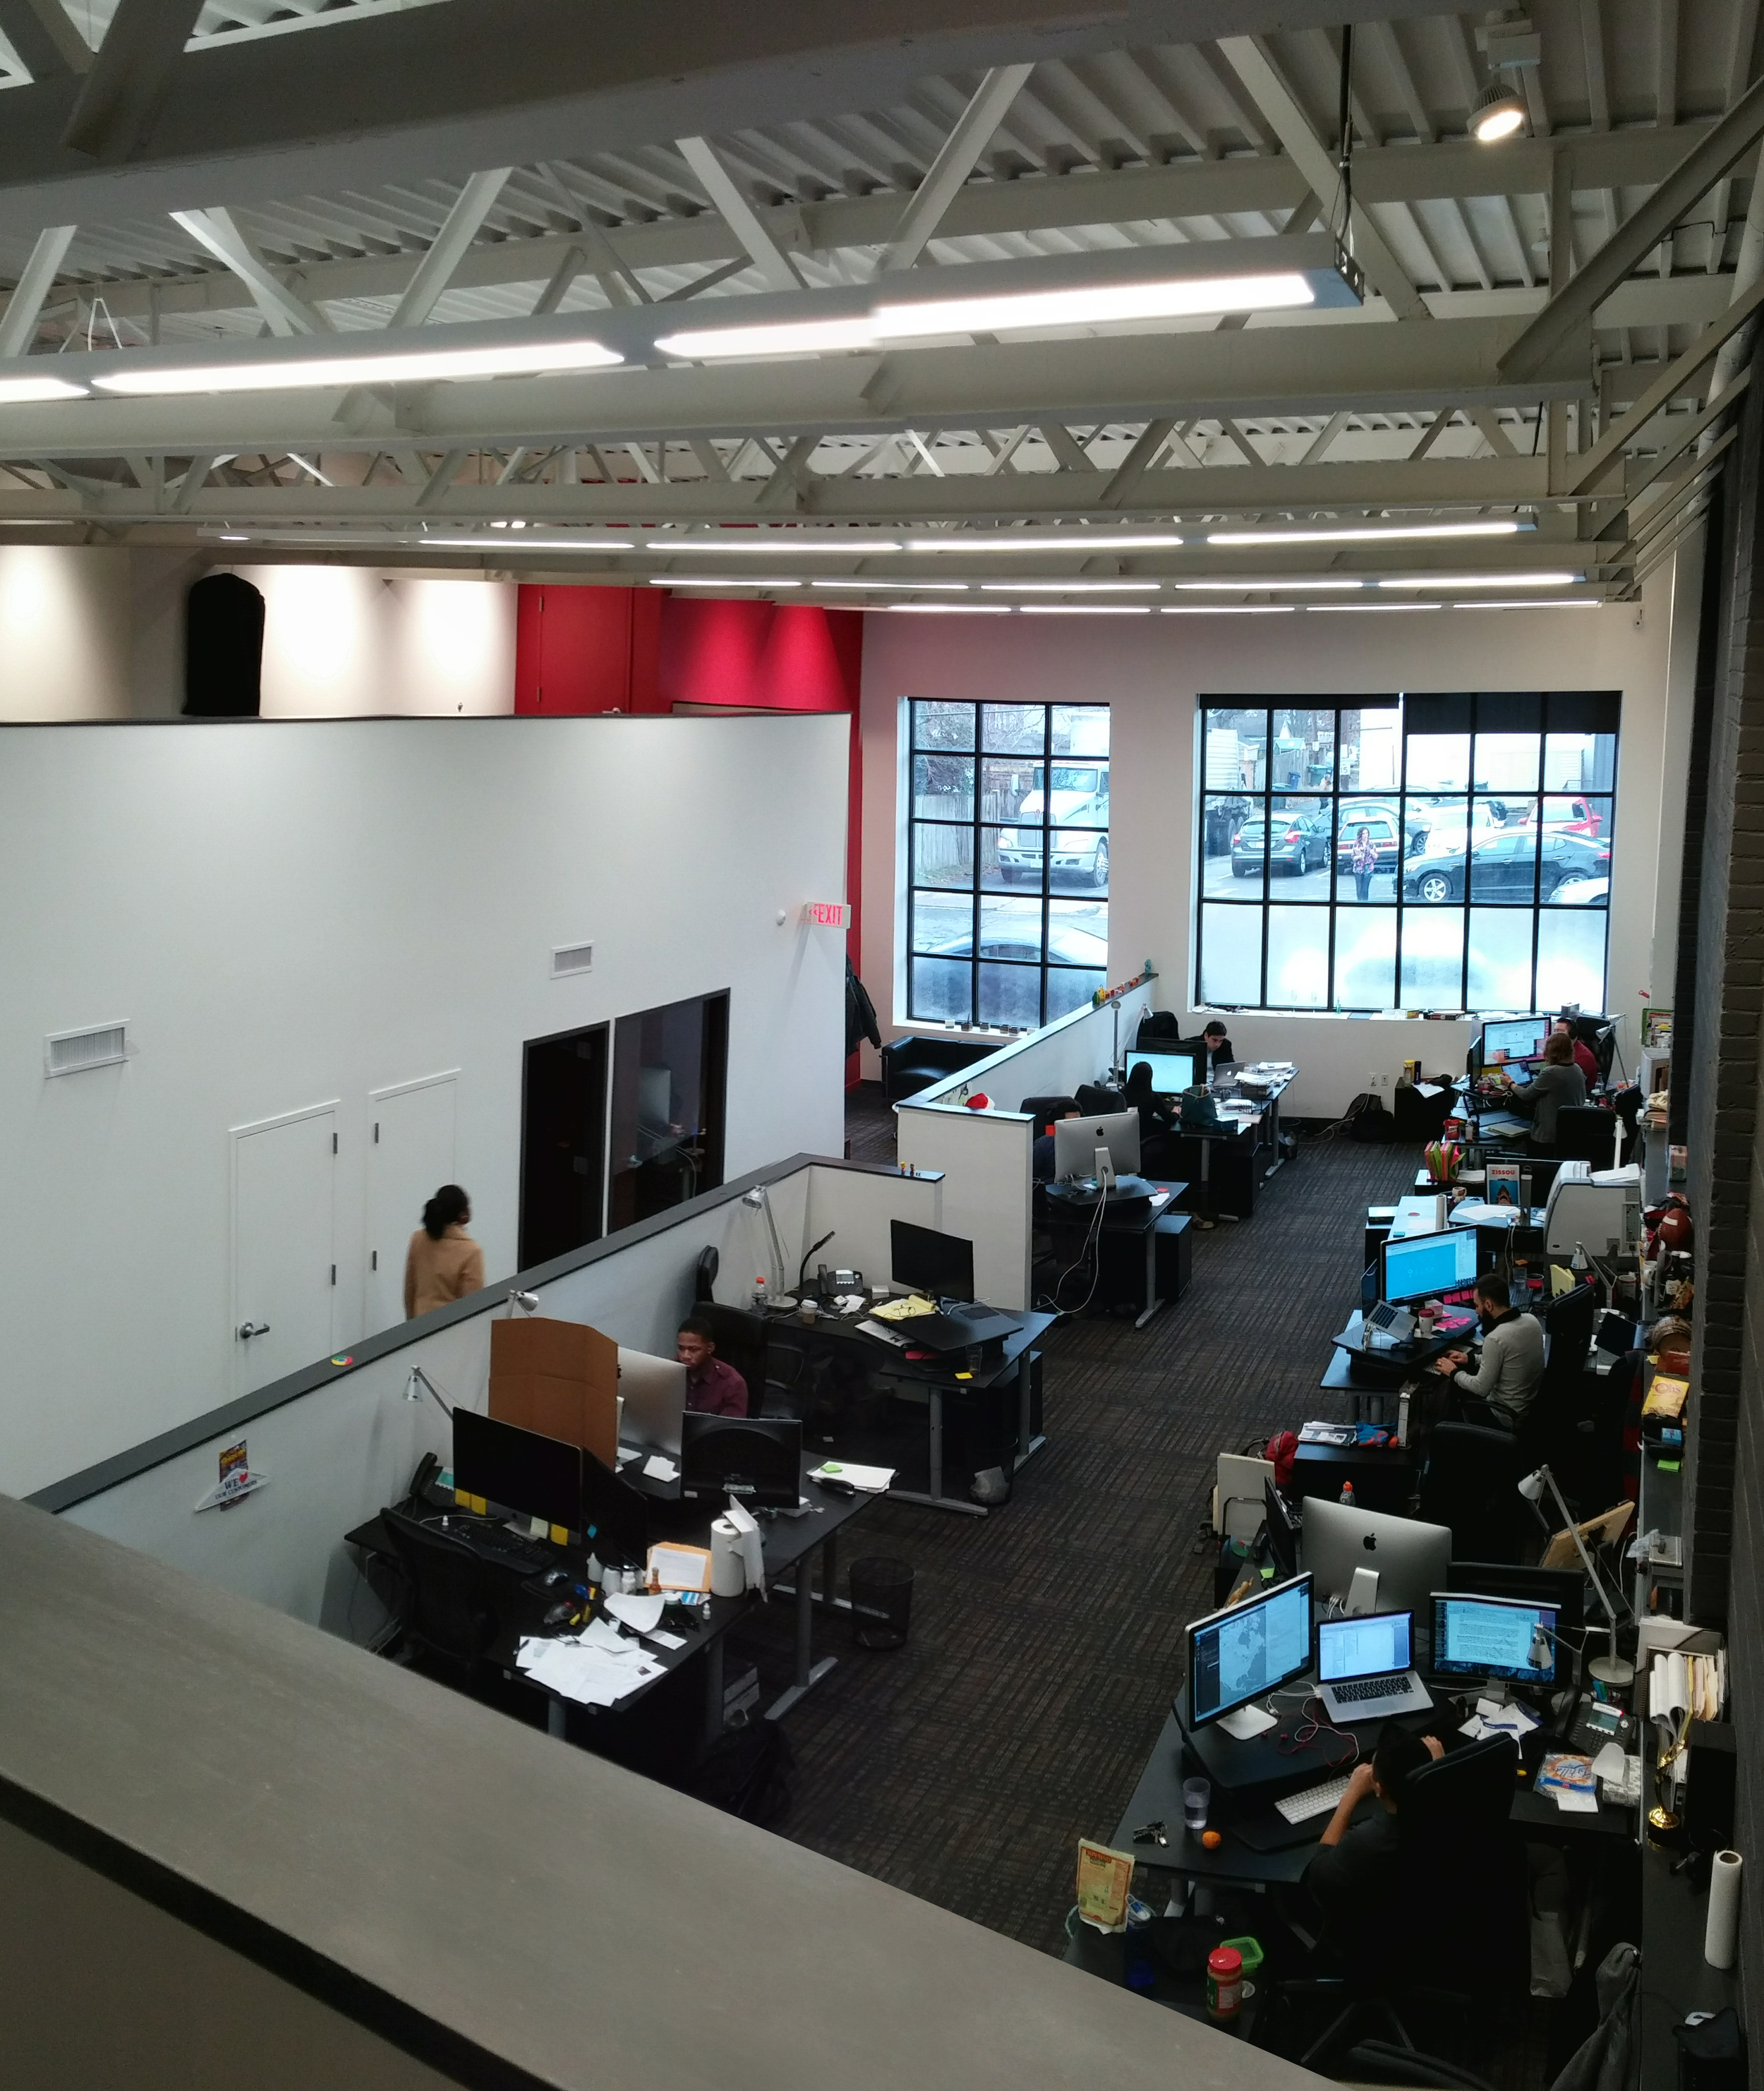 View of entry and workspace from mezzanine